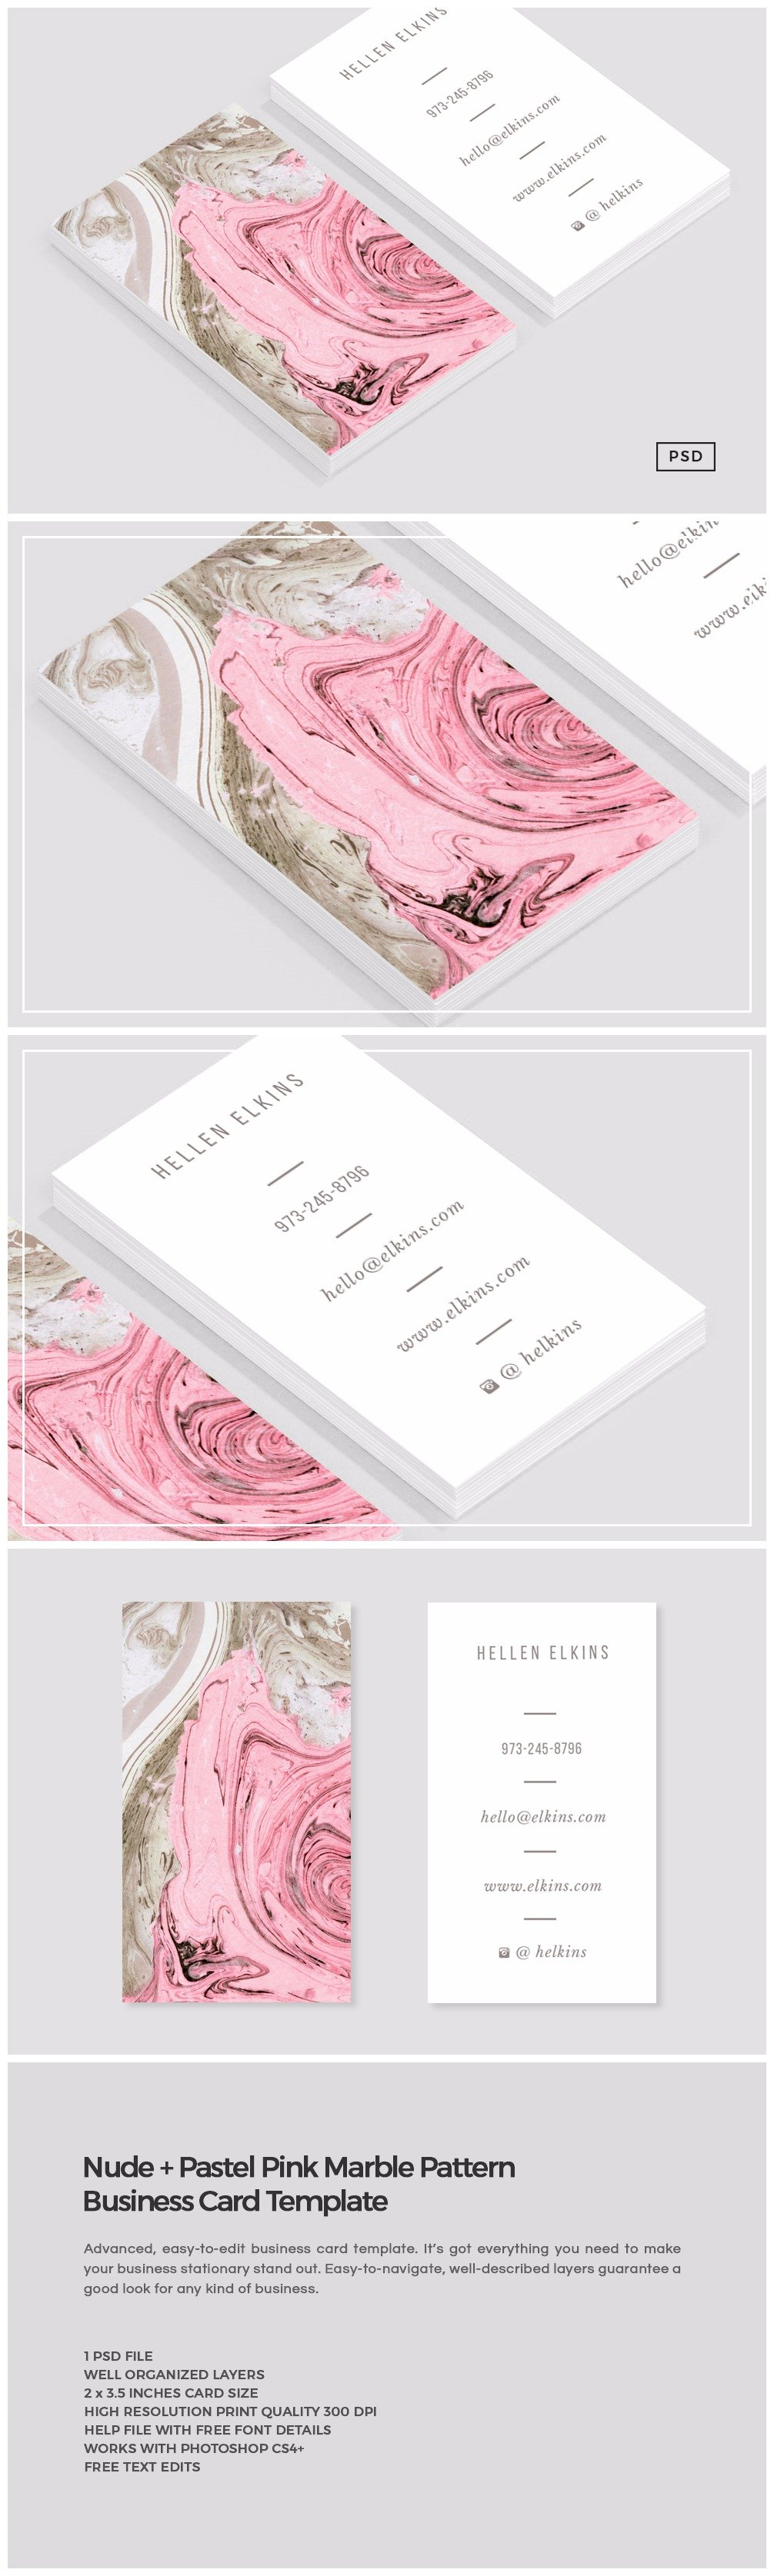 Nude pink marble business card business card templates nude pink marble business card business card templates creative market magicingreecefo Gallery